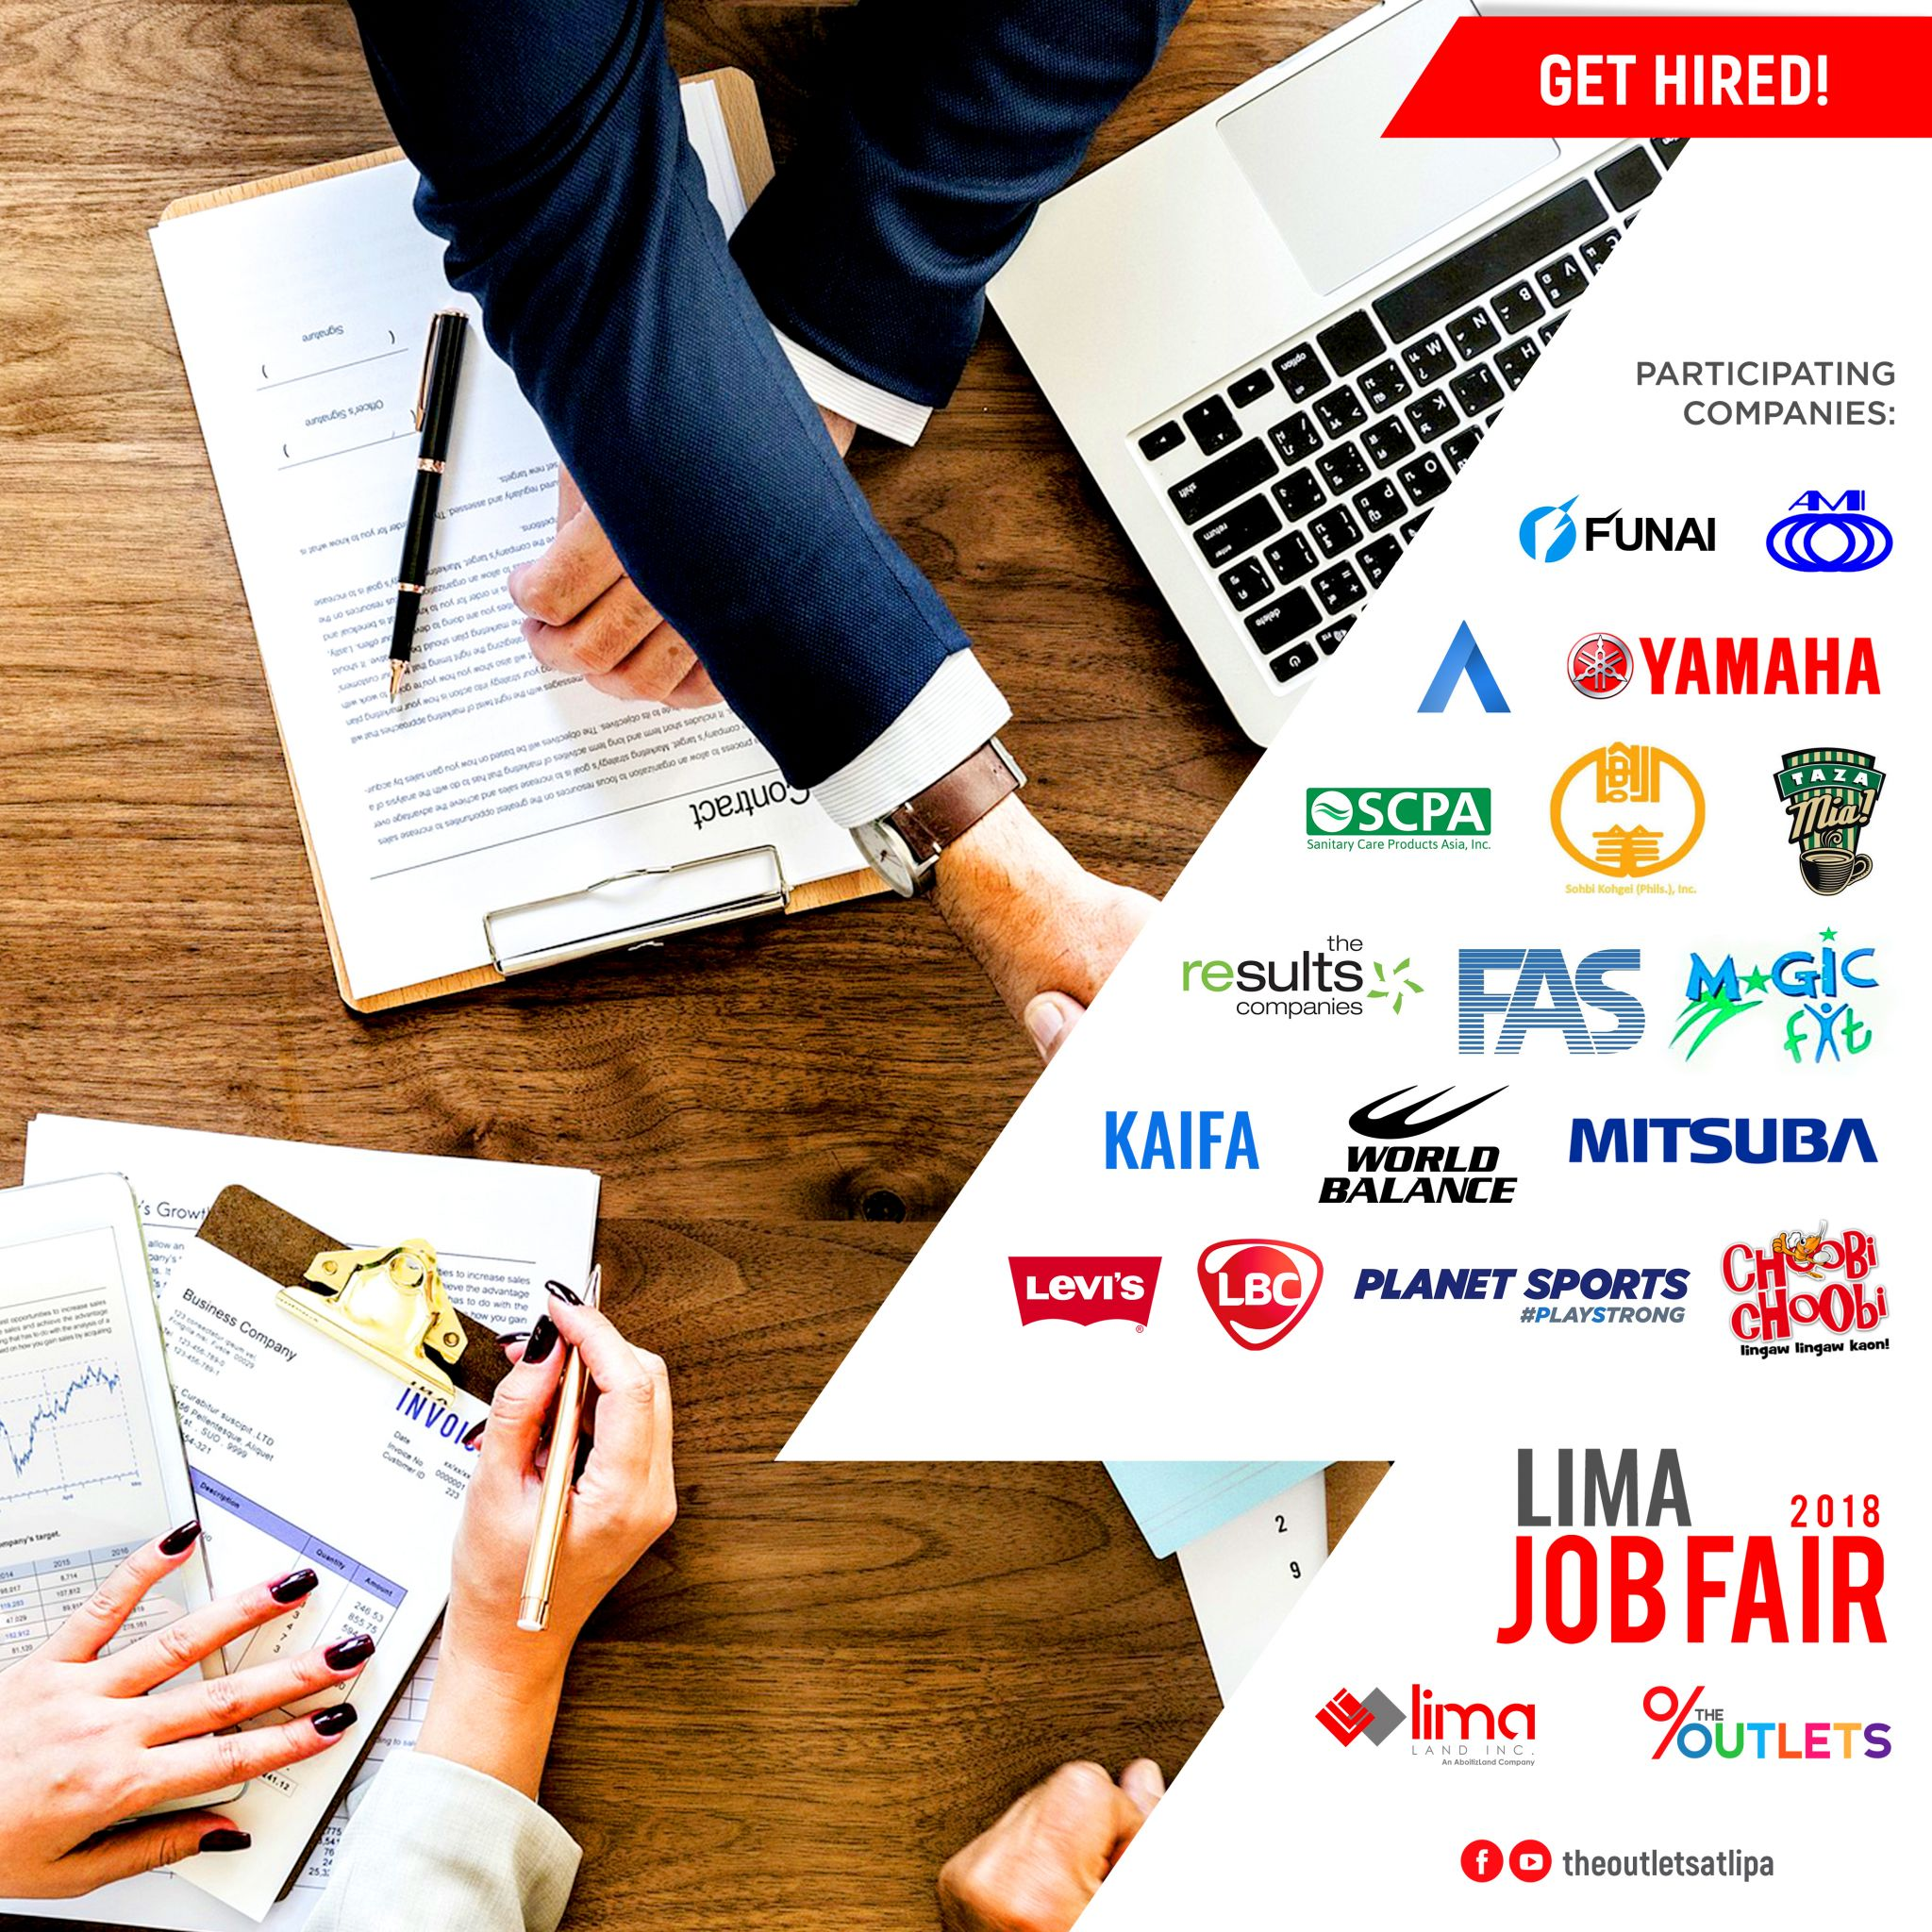 Get Hired at the LIMA Job Fair 2018